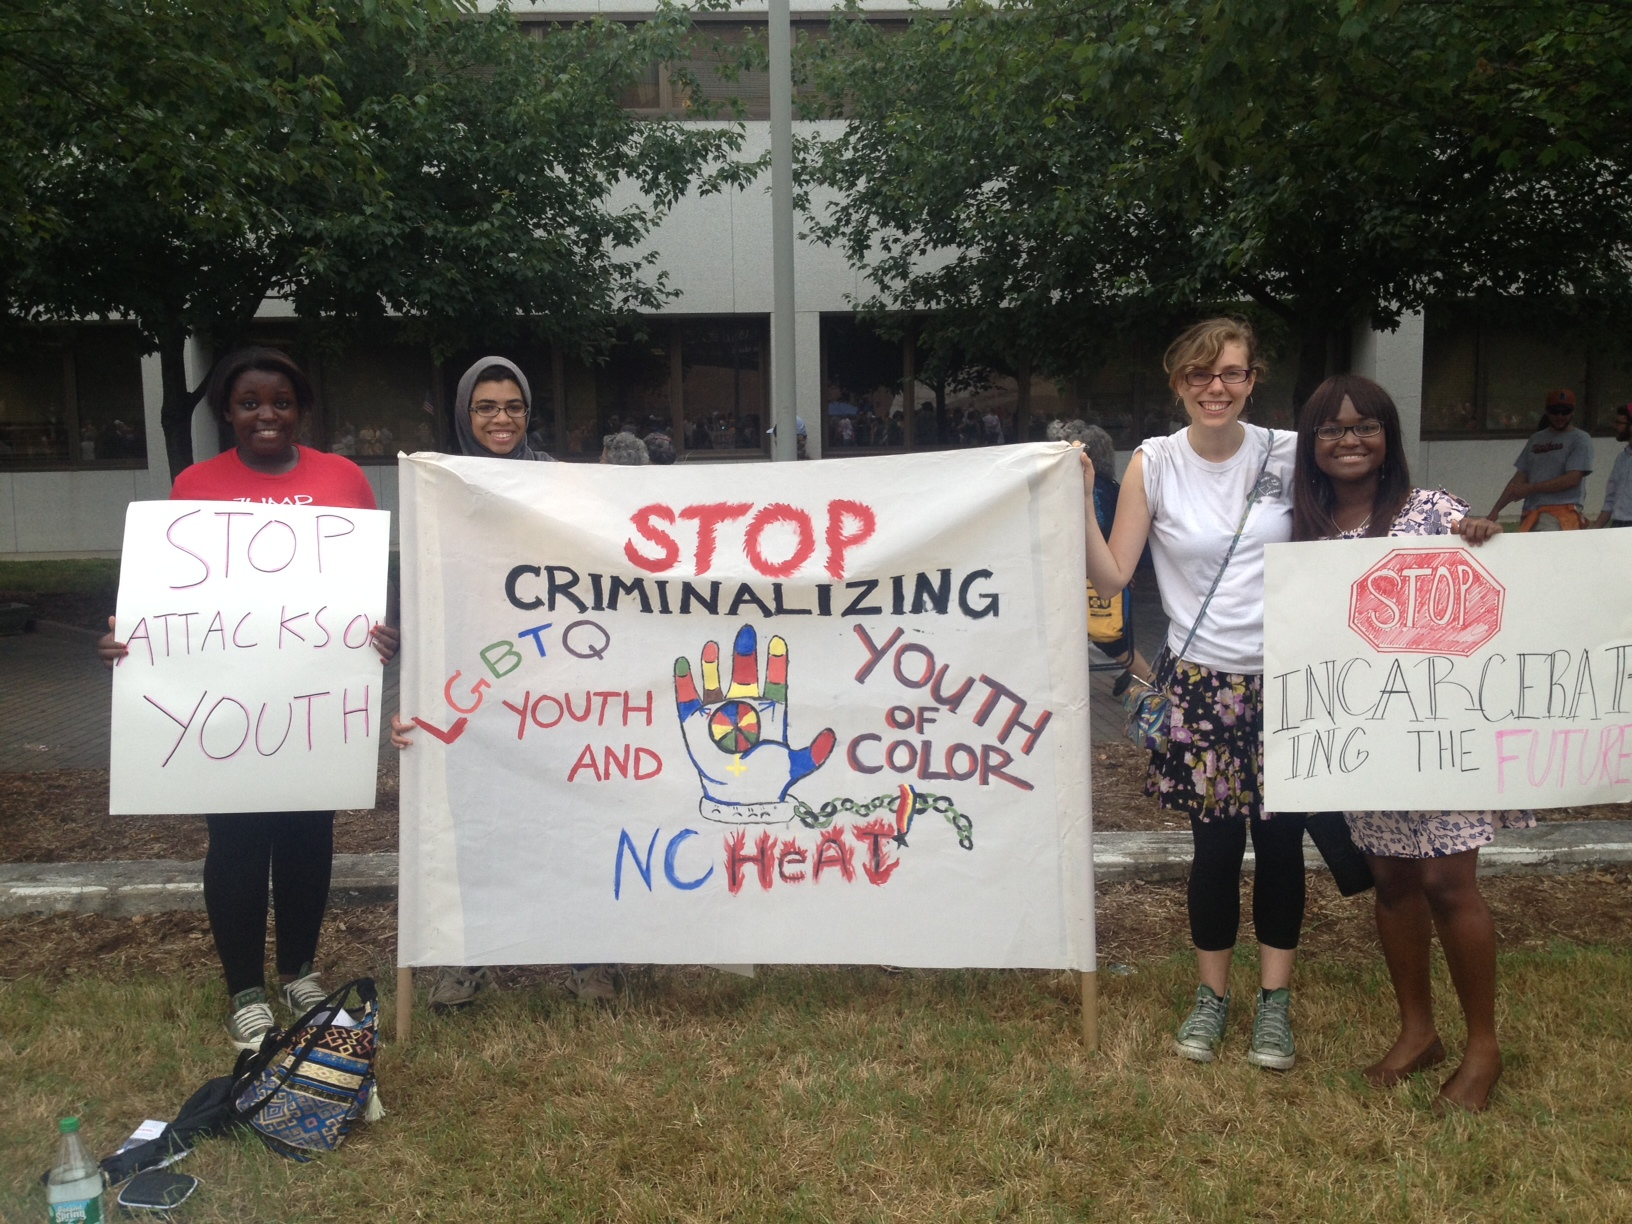 NC HEAT & the Youth Organizing Institute bring their message to Moral Mondays for the 4th week!